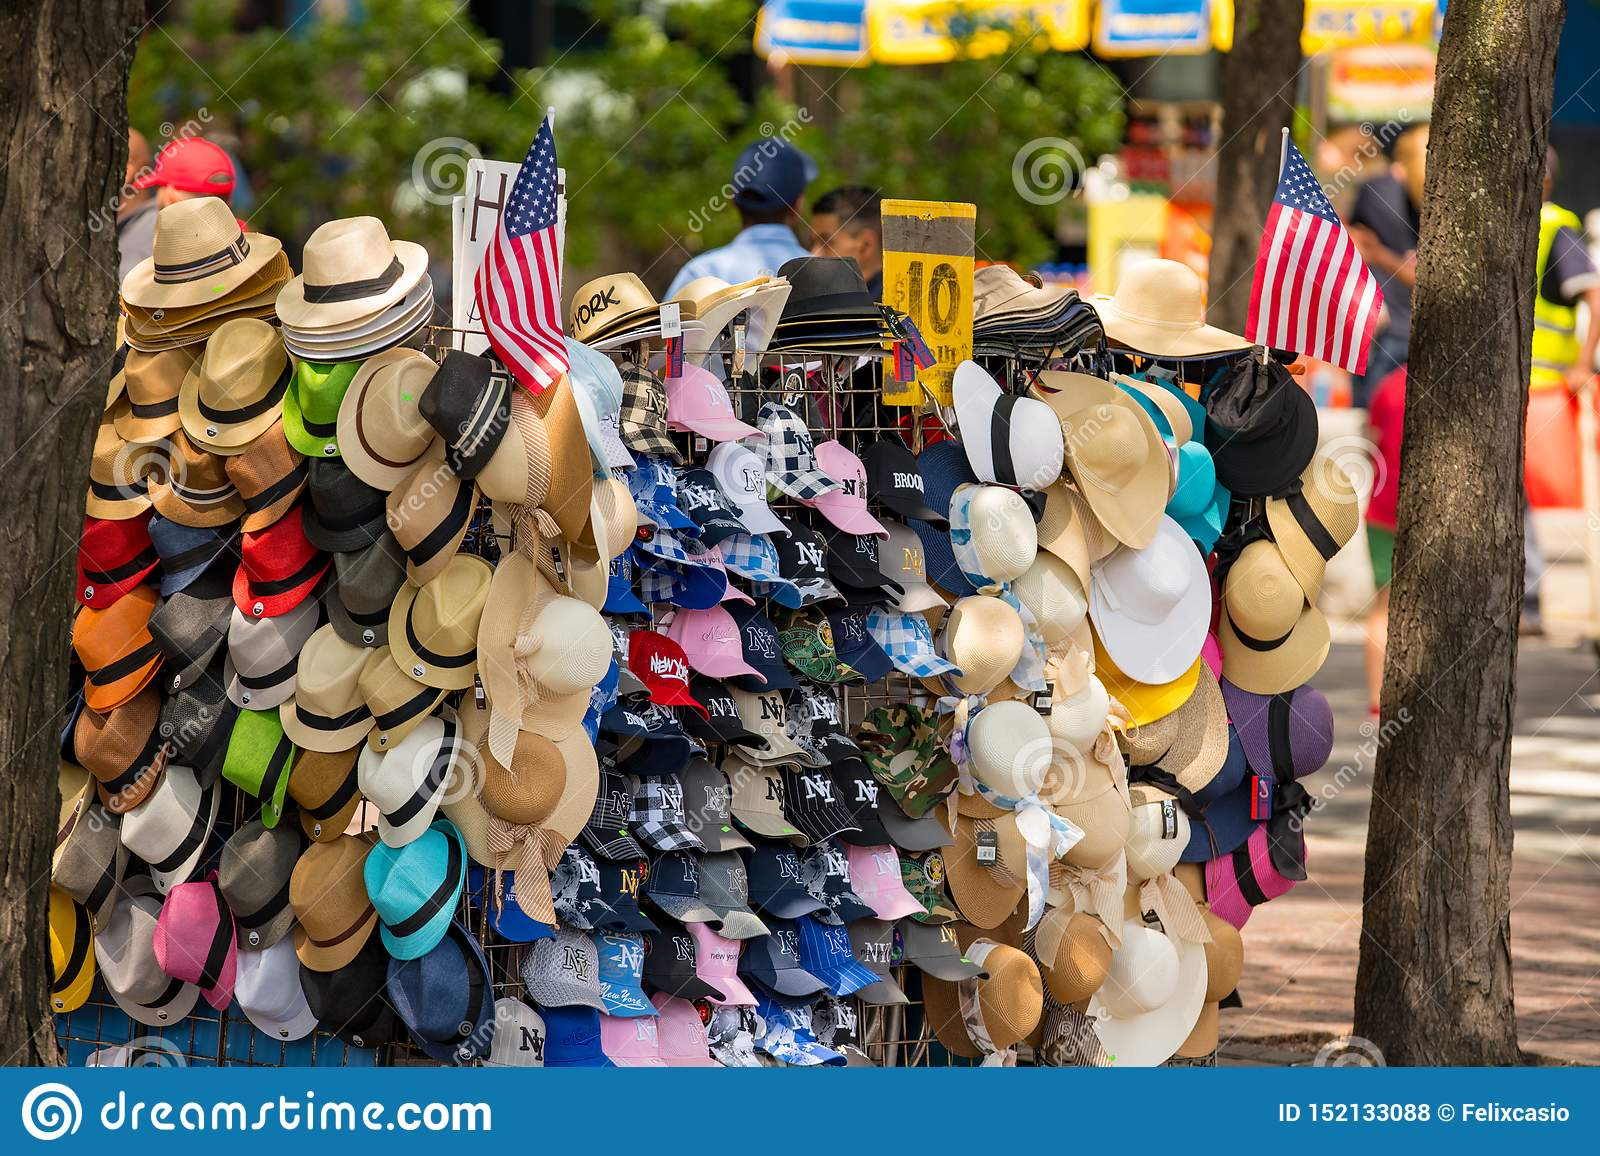 Hats for sale in New York